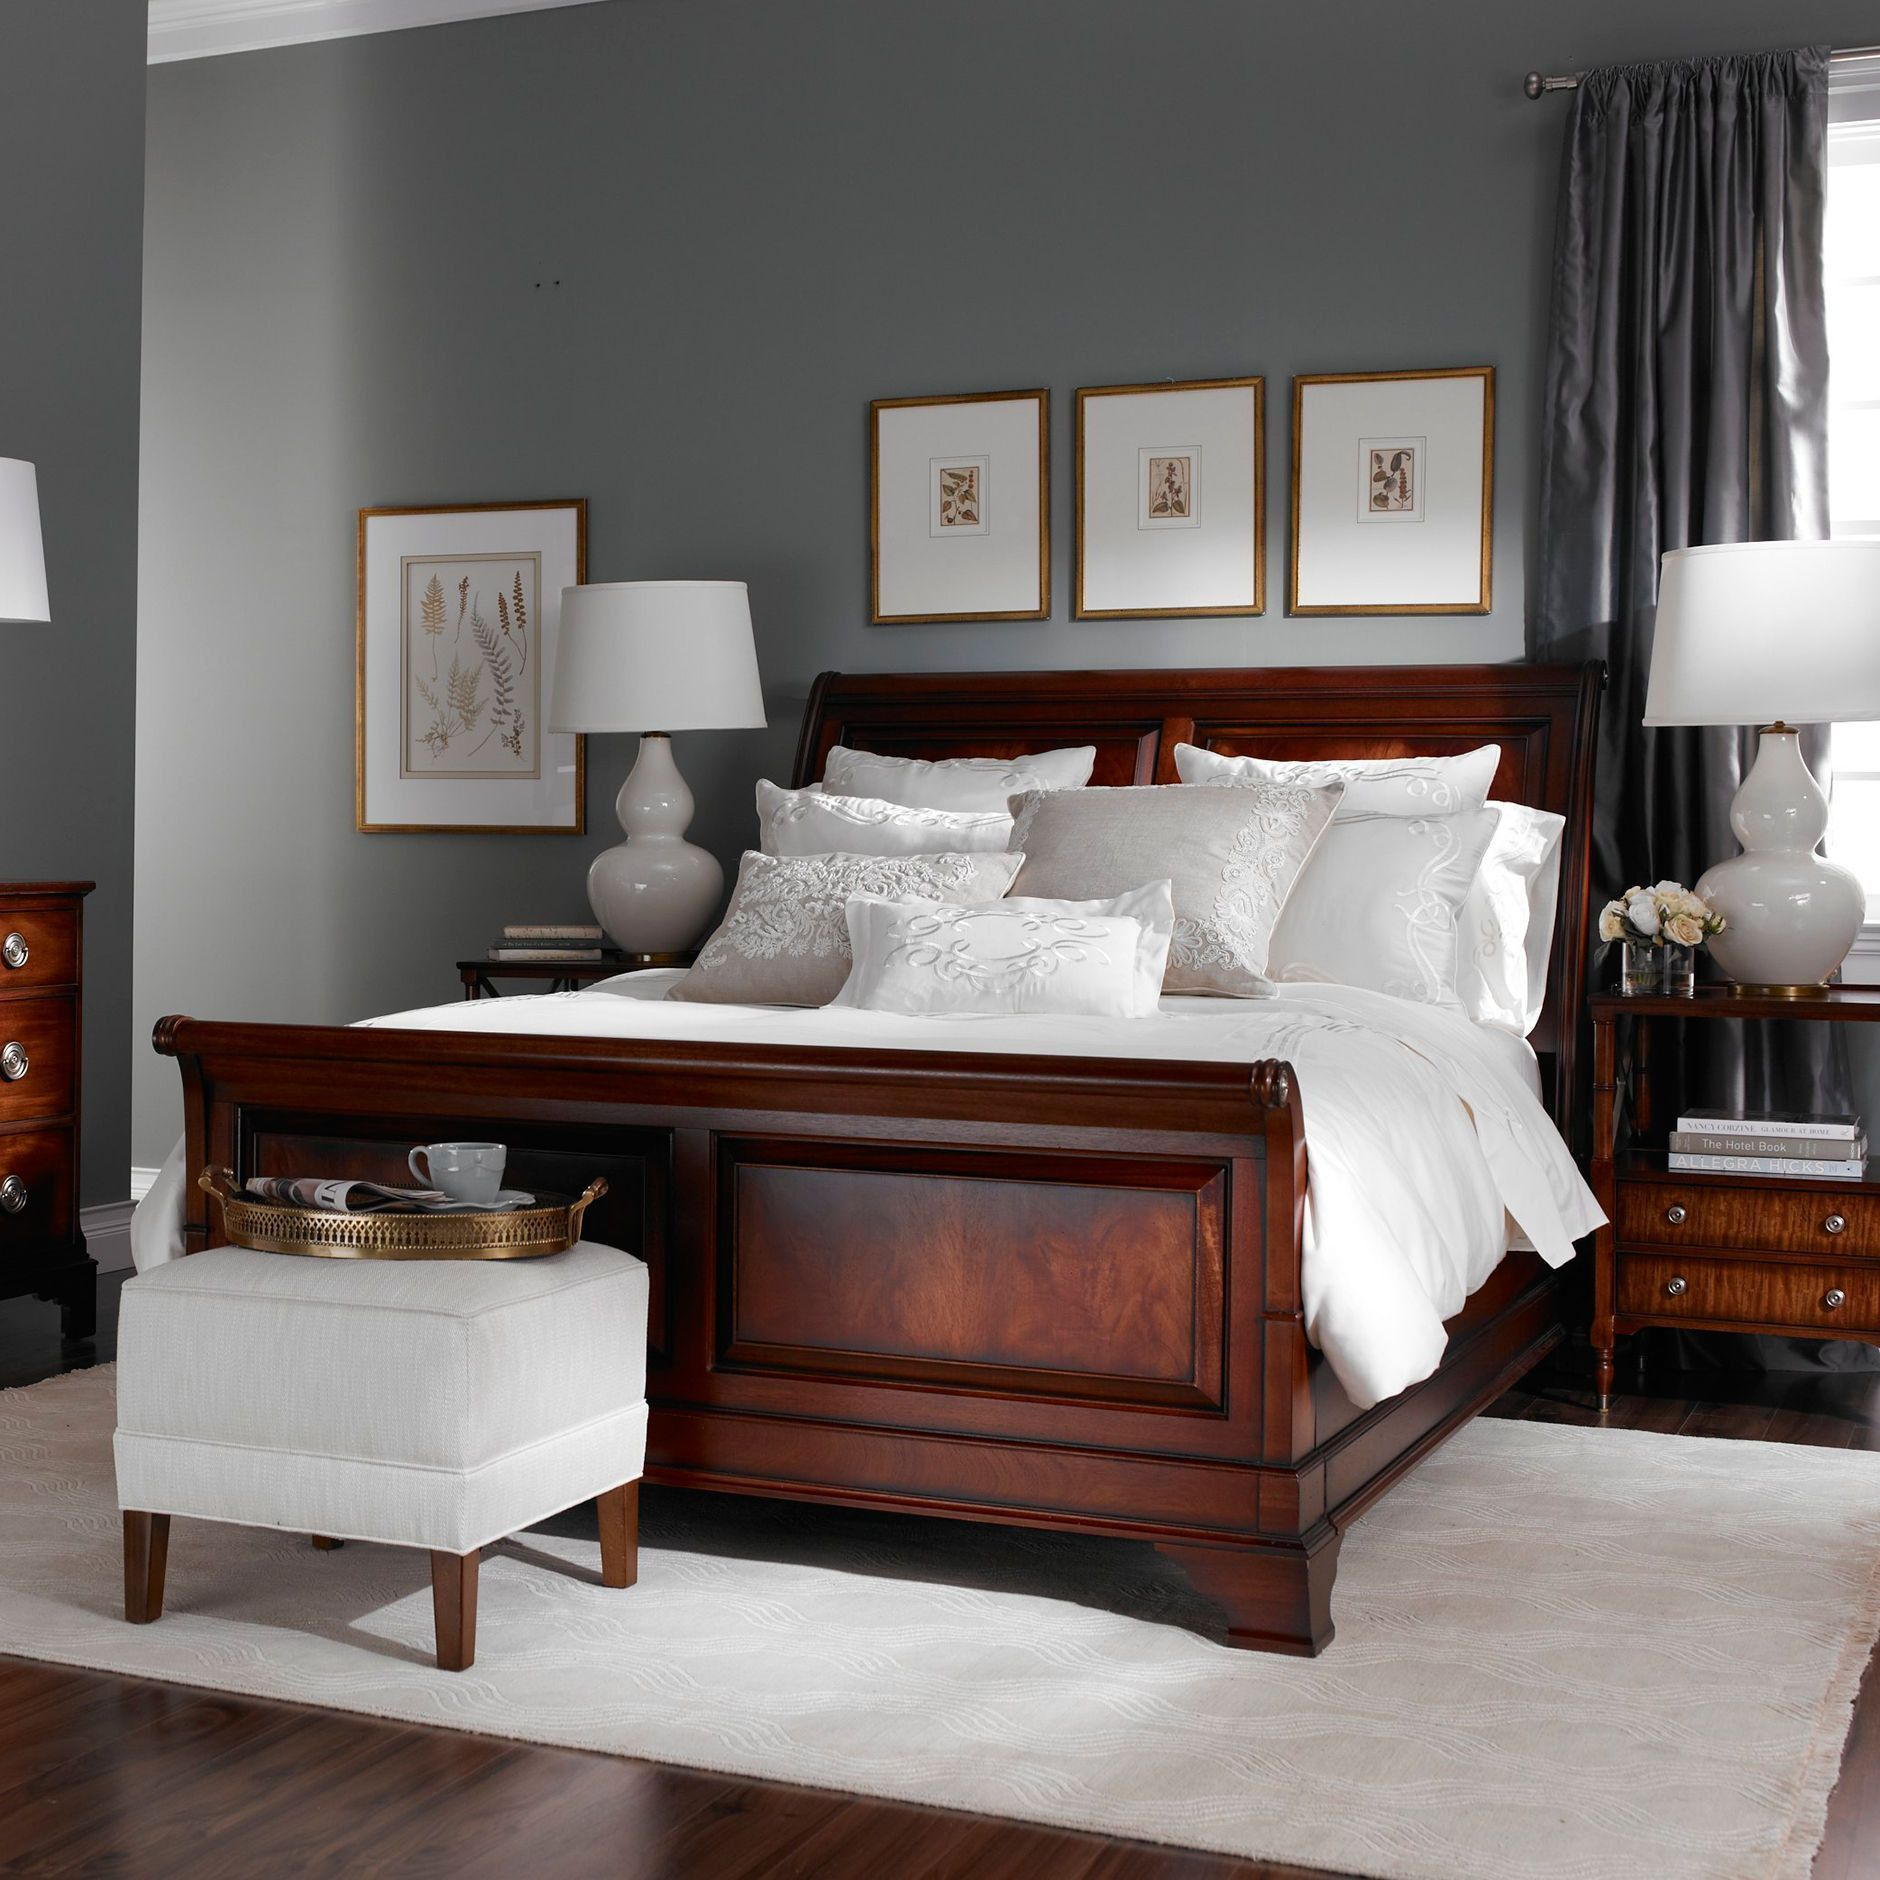 Cherry Wood Furniture Bedroom Decor Ideas Check more at